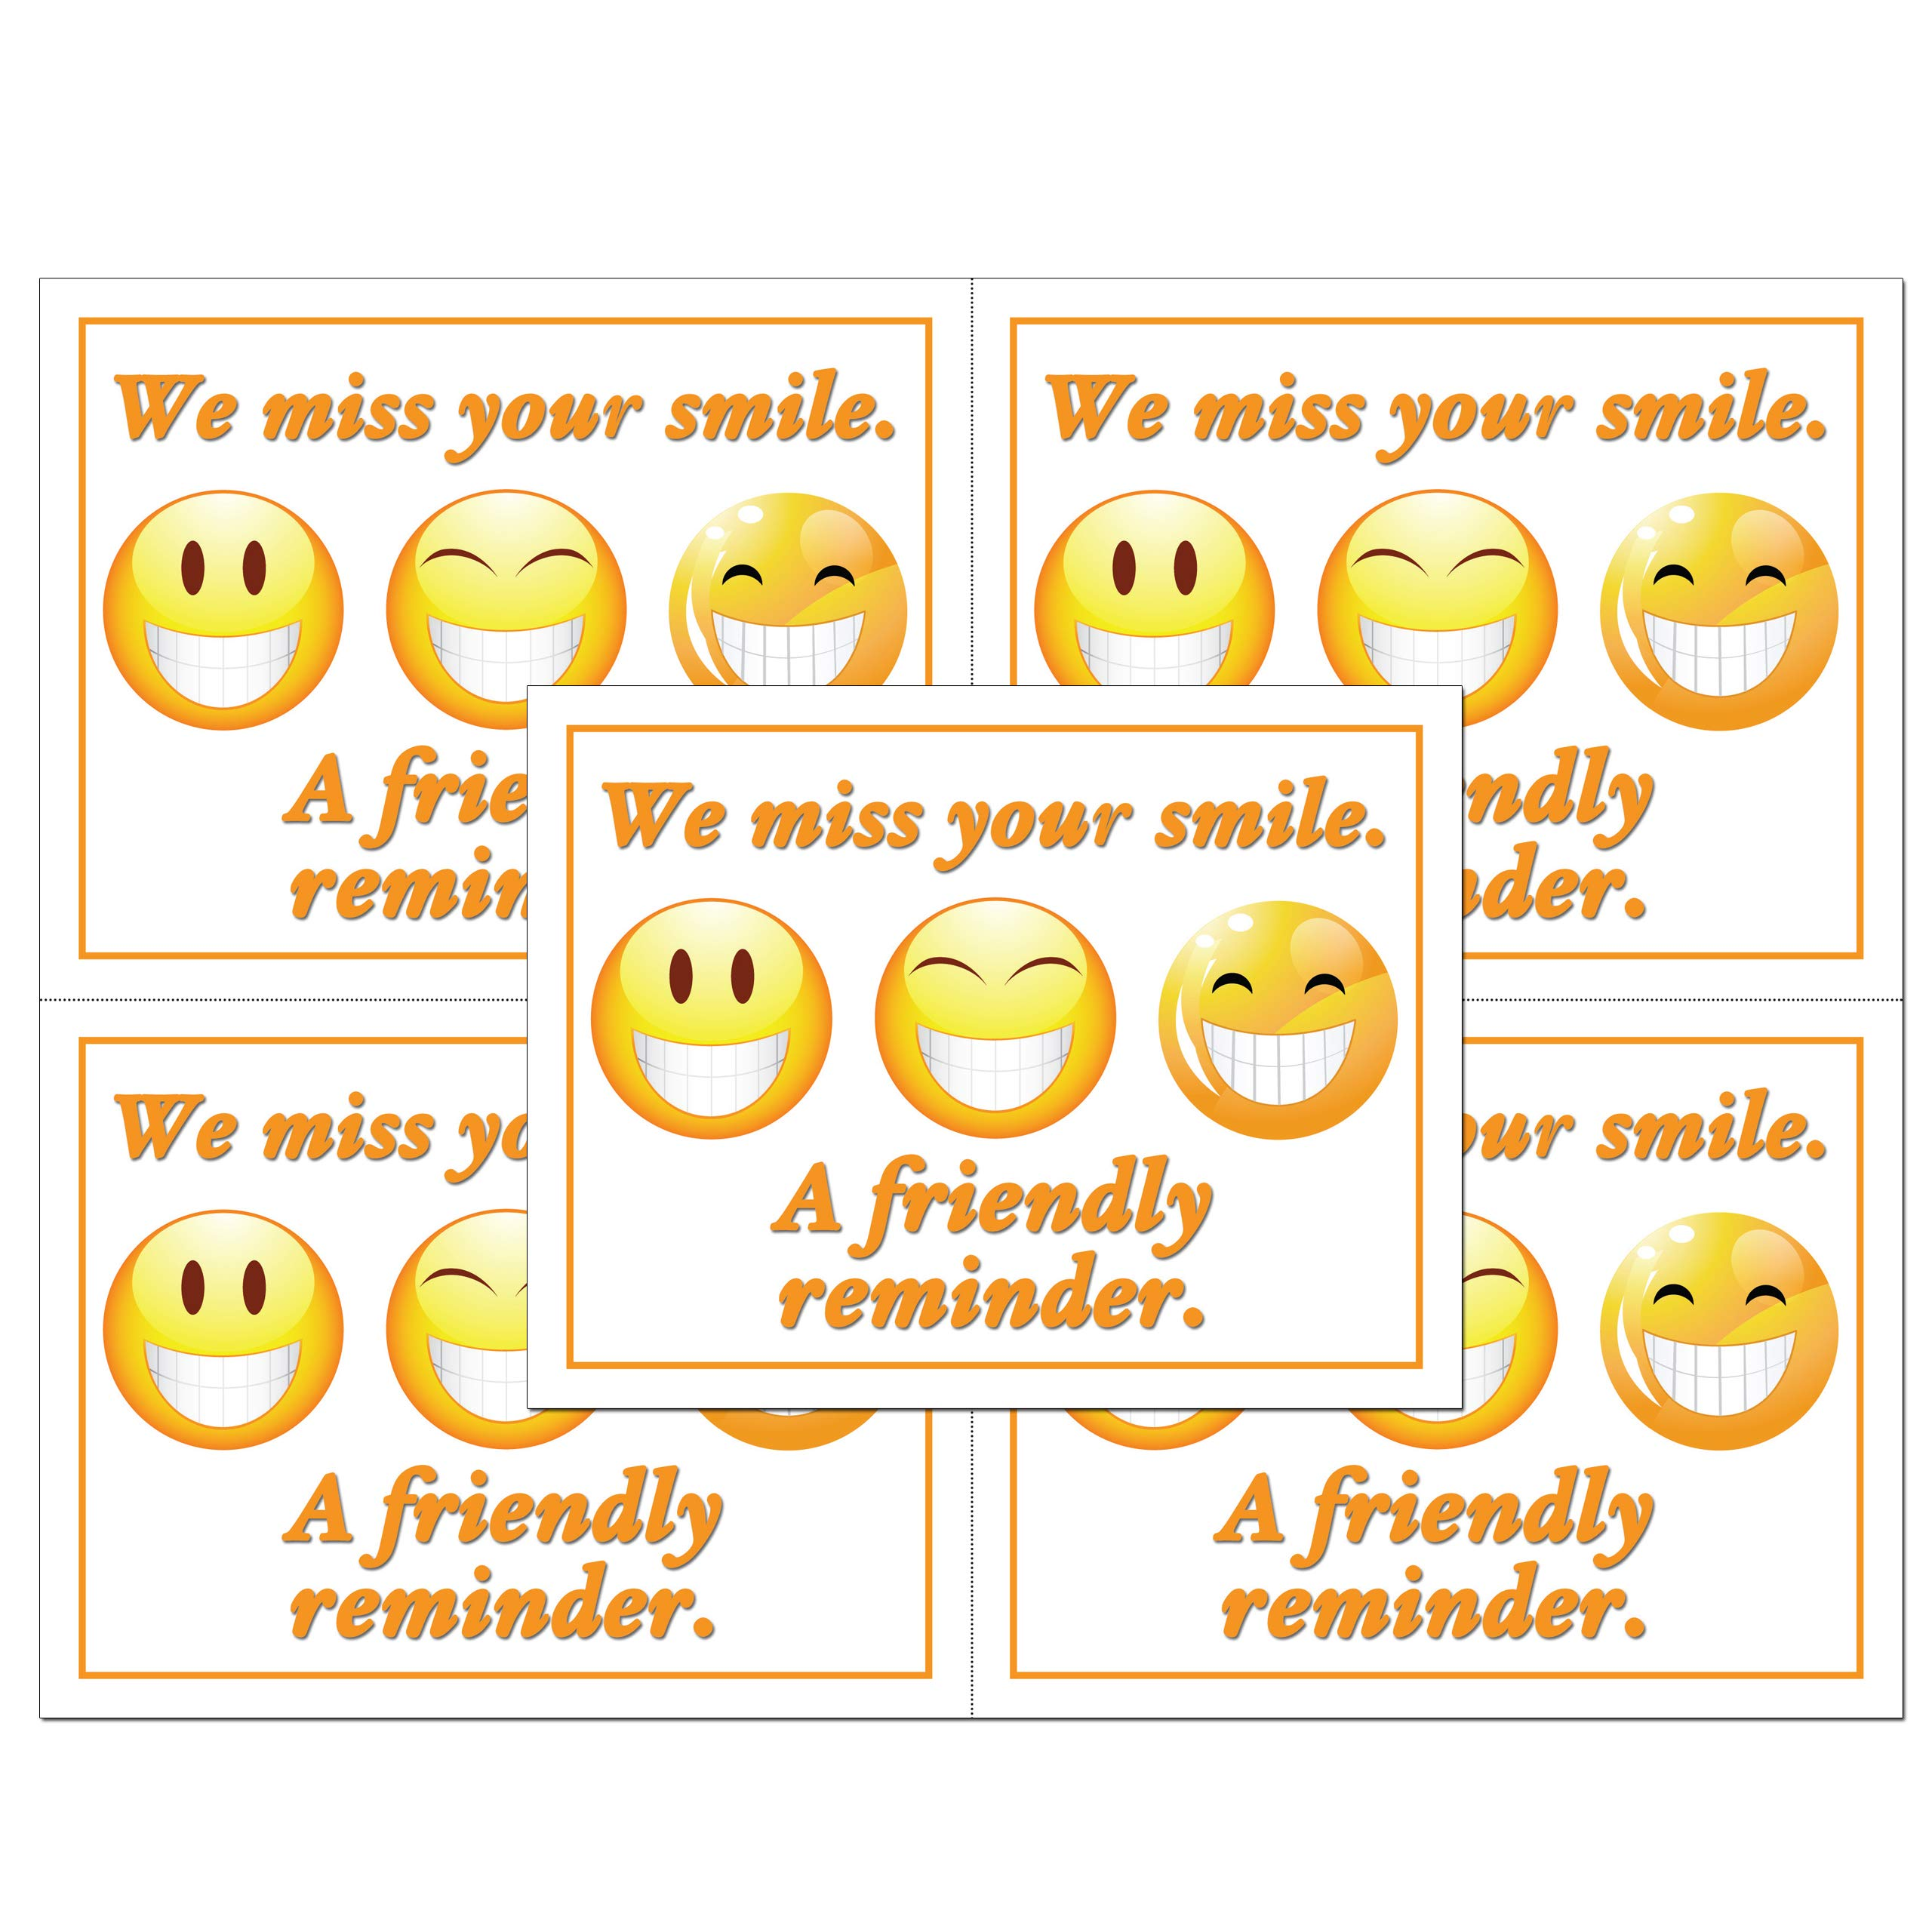 Laser Reminder Postcards, Dental Appointment Reminder Postcards. 4 Cards Perforated for Tear-Off at 4.25'' x 5.5'' on an 8.5'' x 11'' Sheet of 8 Pt Card Stock. DEN129-LZS by Custom Recall